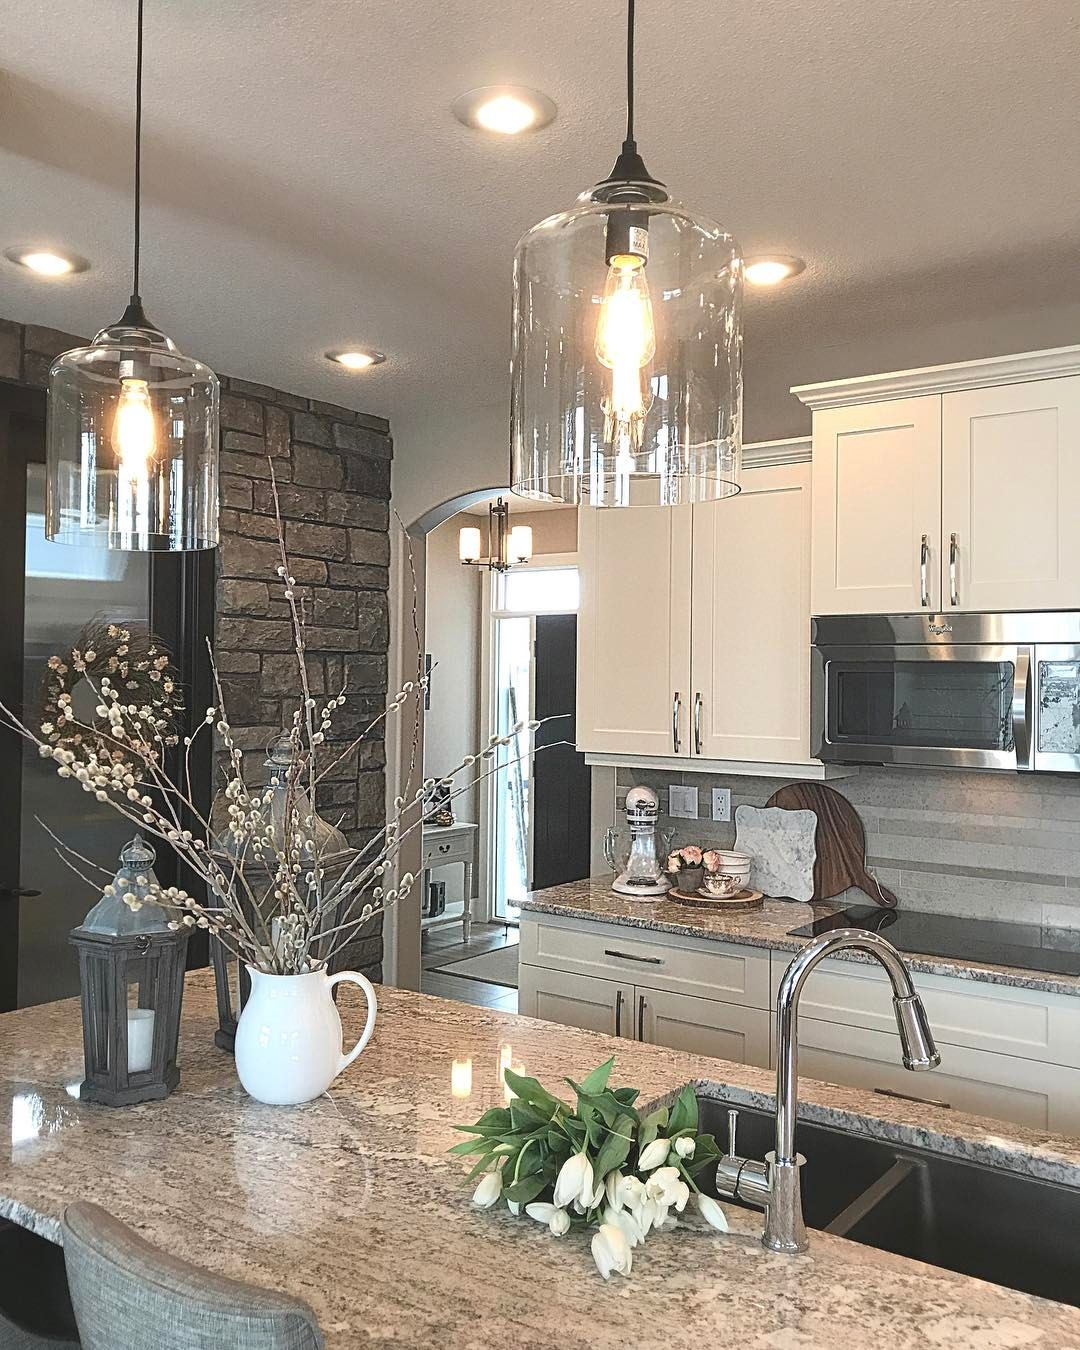 53 Kitchen Lighting Ideas: Pin By Erica Bunker On Decorating My House In 2019